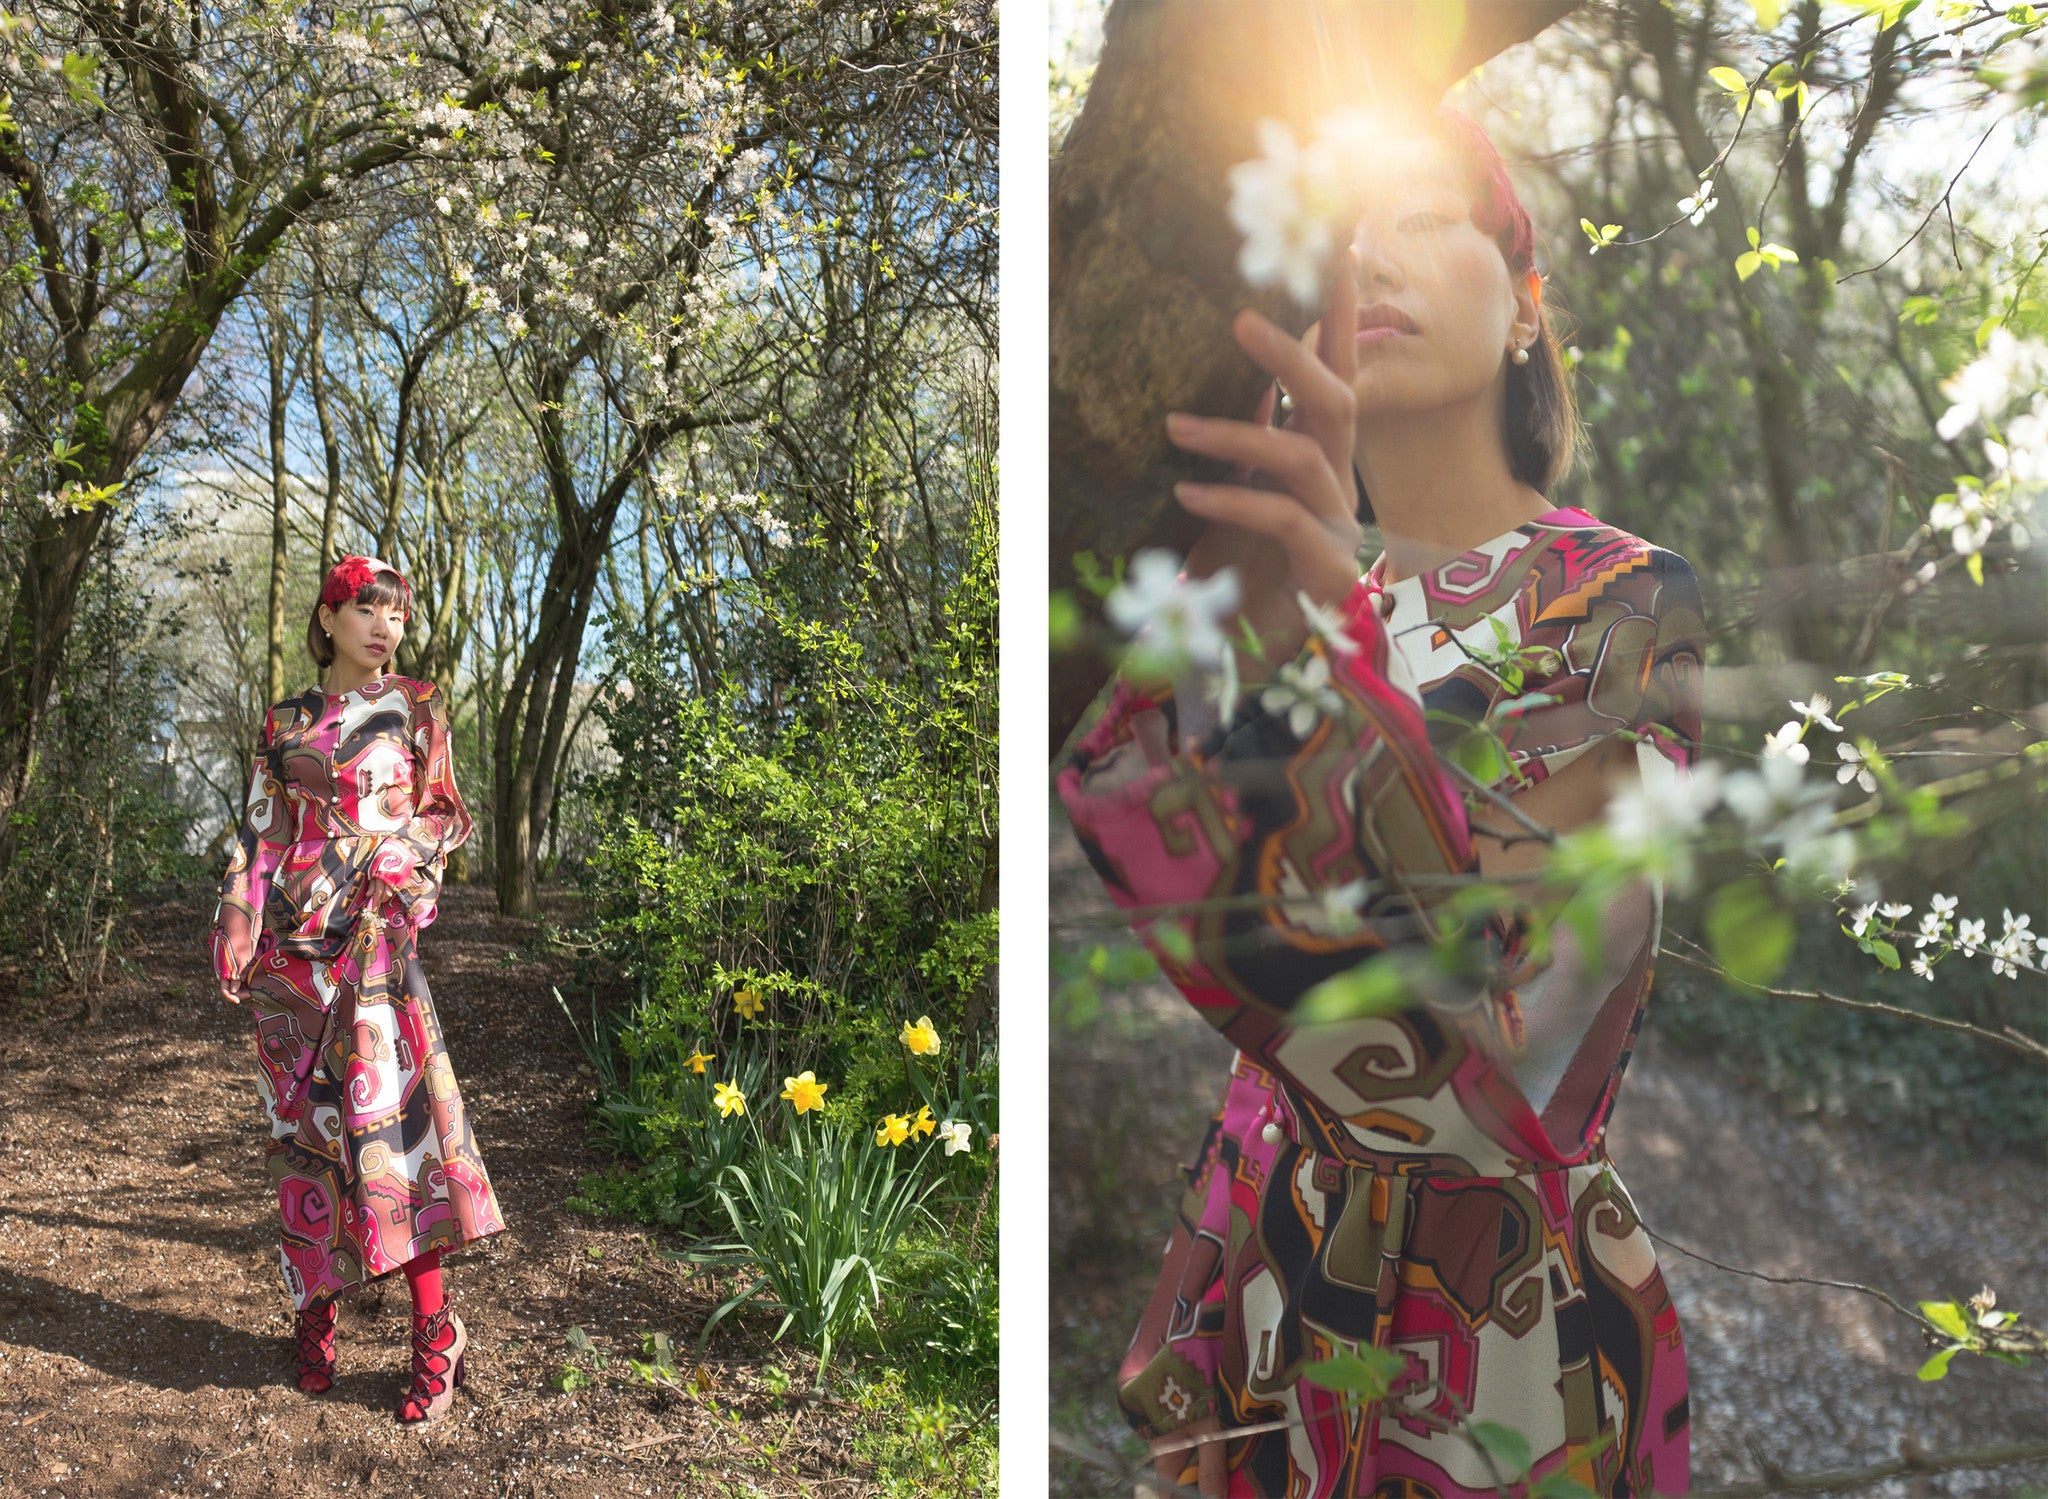 Spring wonderland - a vintage outfit inspired by poetry | On Slowness